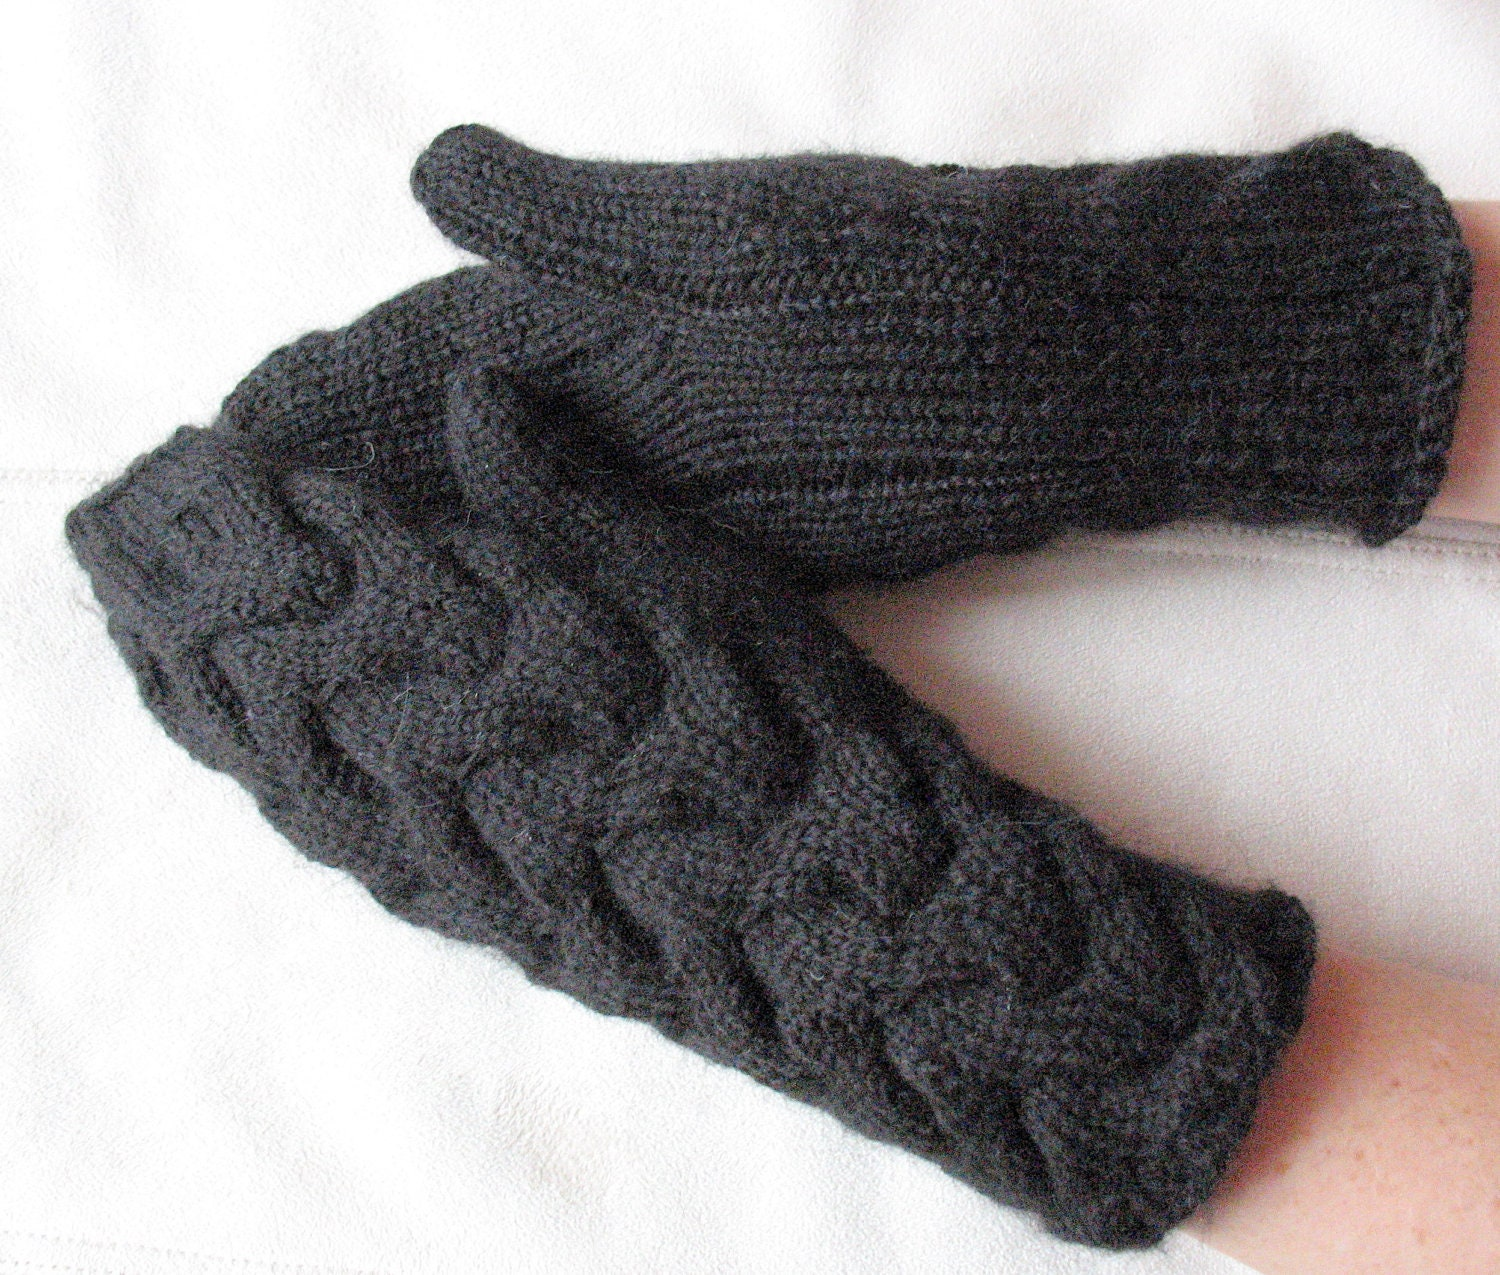 Knit Mittens Gloves Black Arm Warmers, Soft Acrylic Mohair - Initasworks